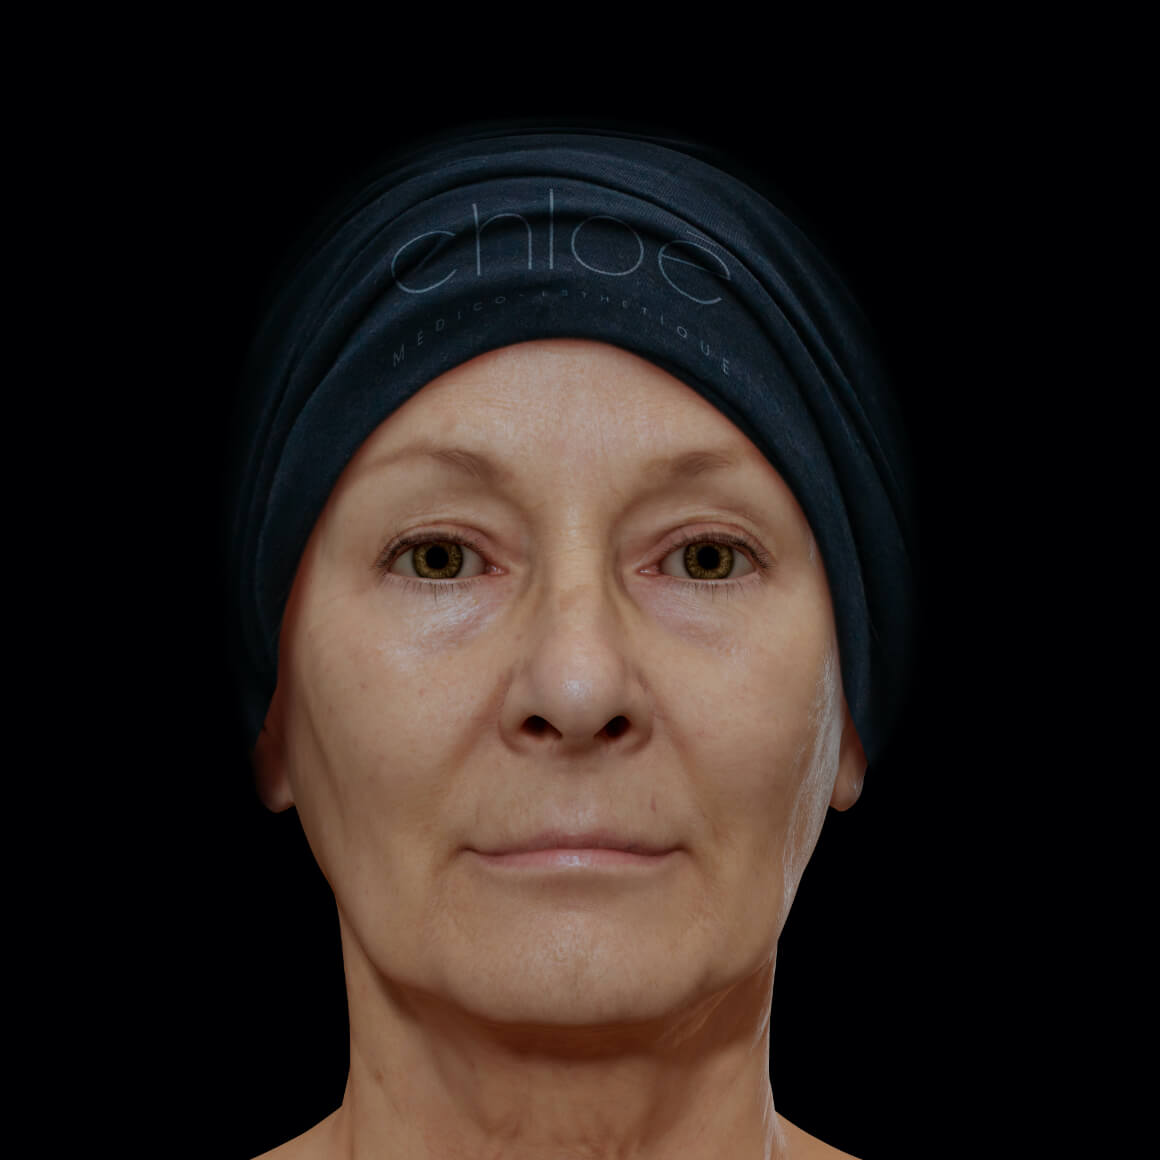 Female patient at Clinique Chloé facing front after fractional laser treatments for eyelid lift